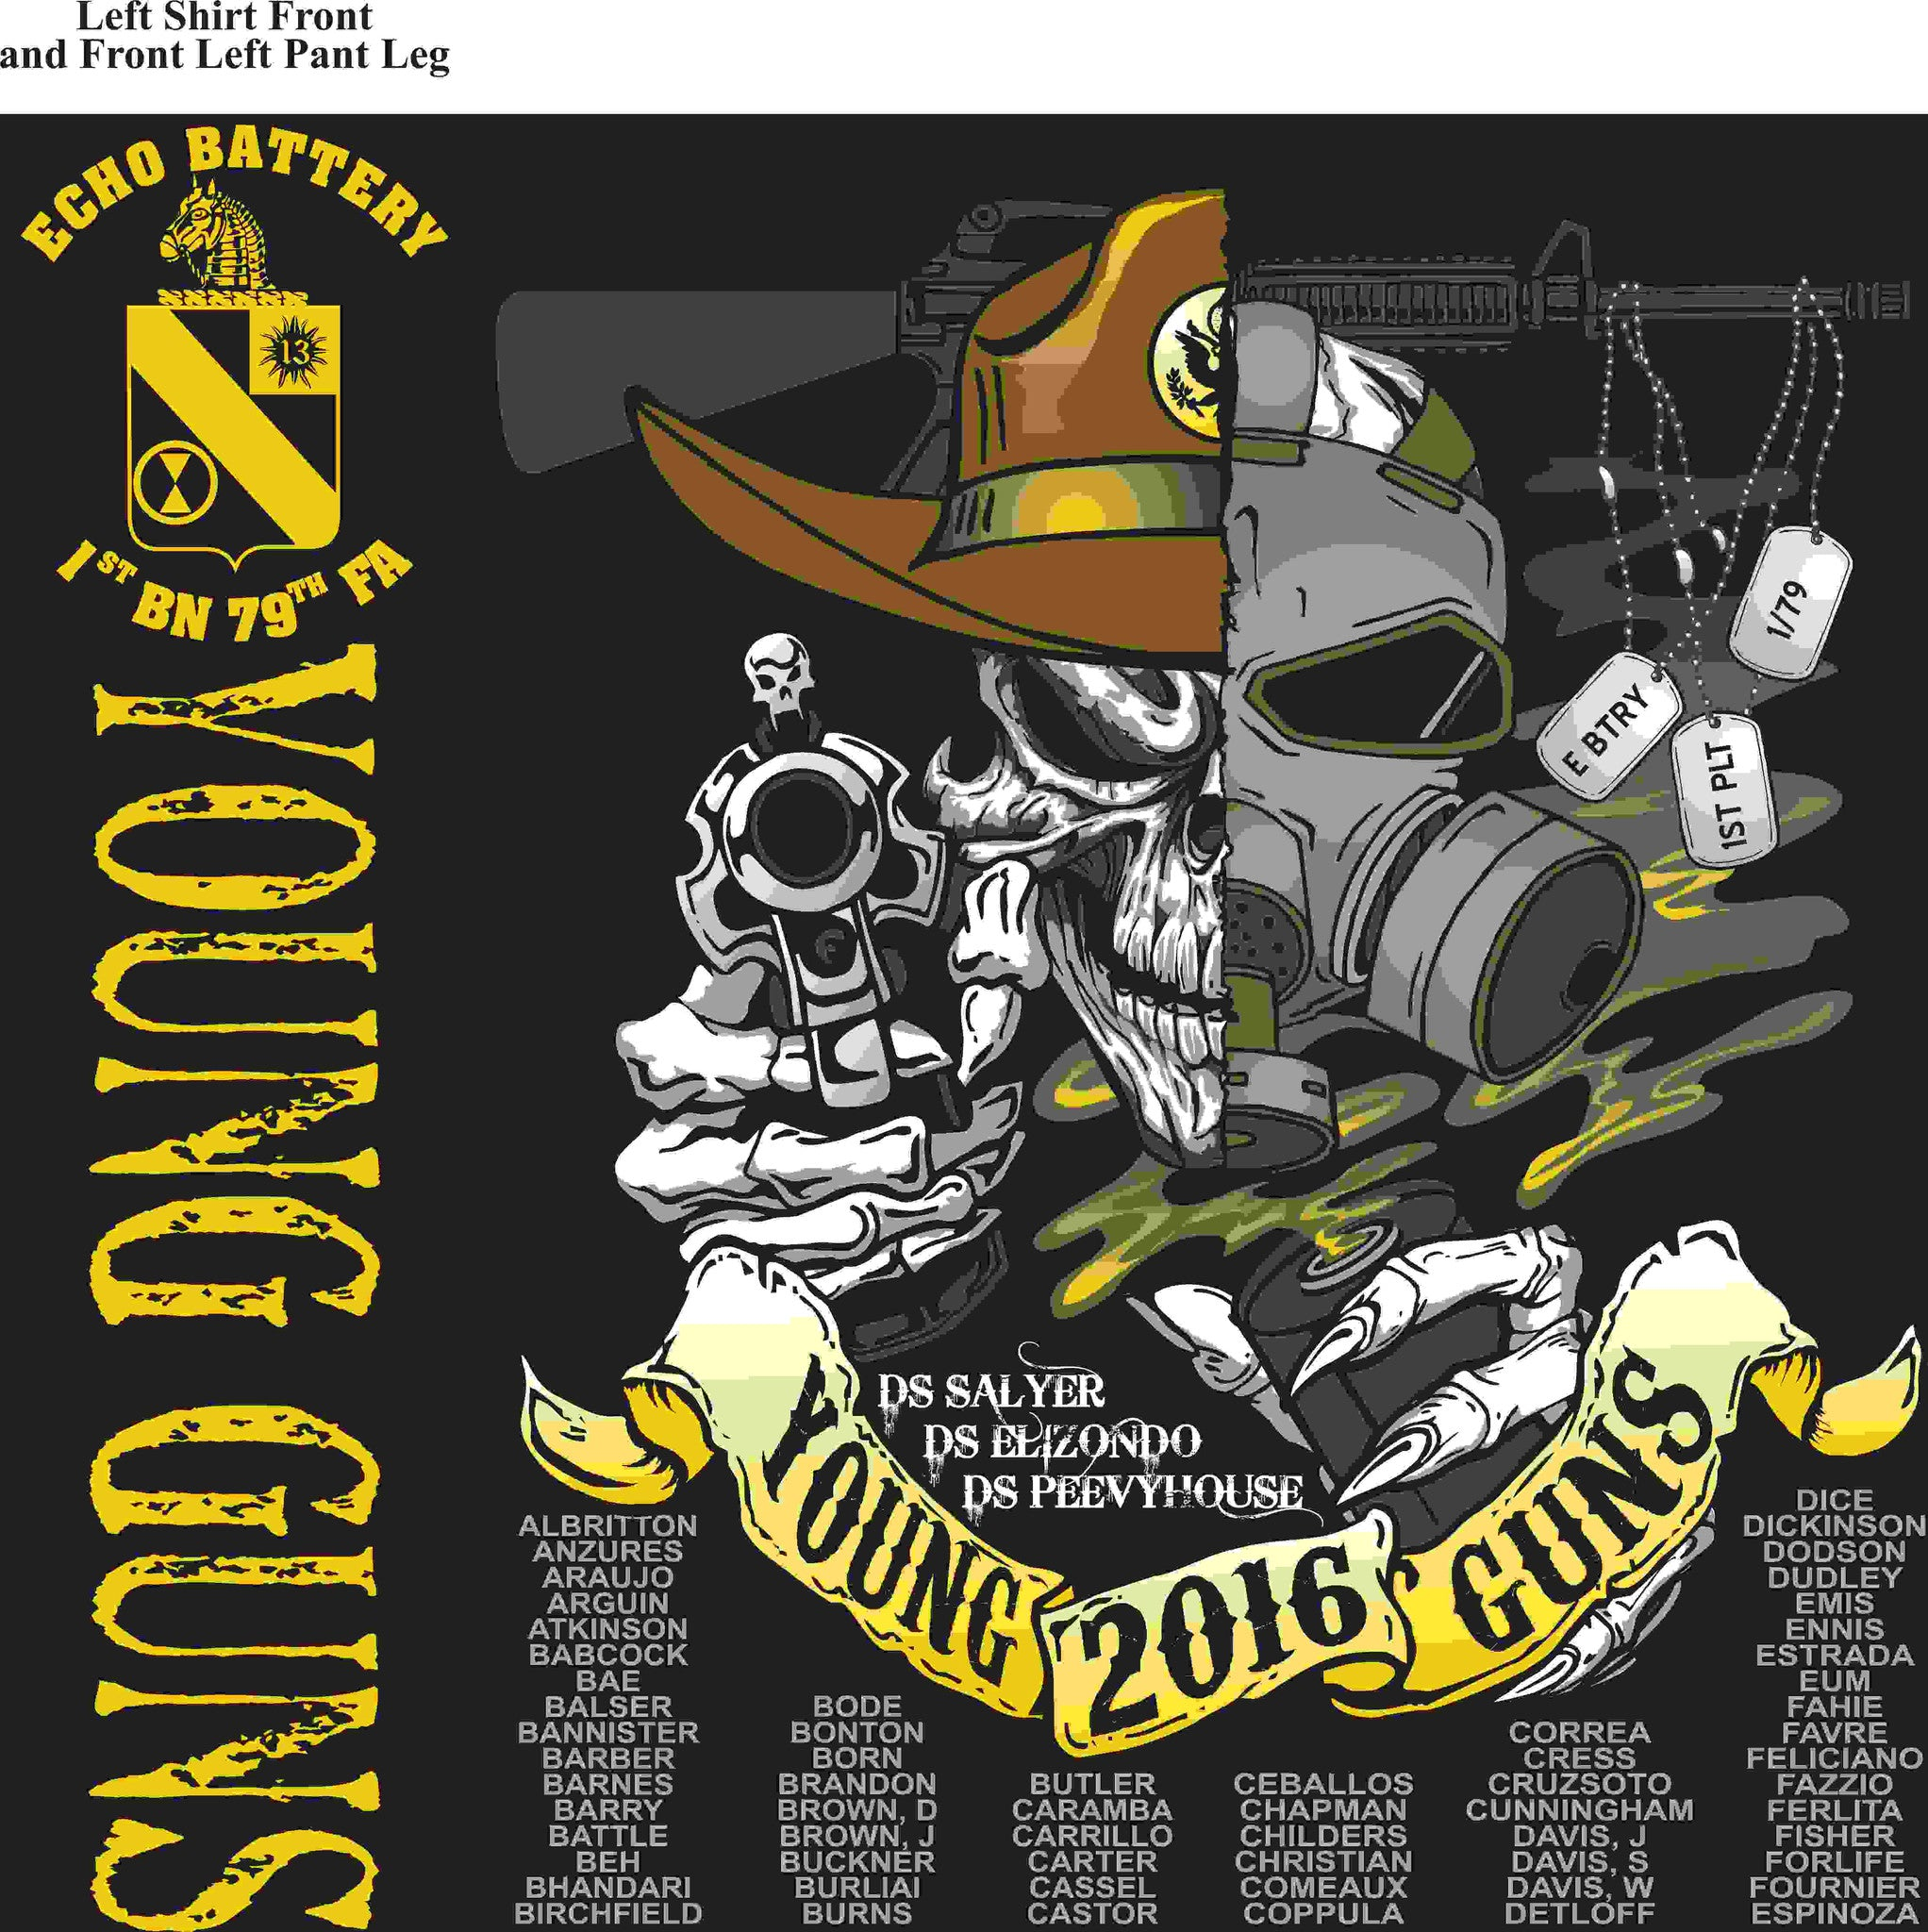 PLATOON SHIRTS (2nd generation print) ECHO 1st 79th YOUNG GUNS APR 2016